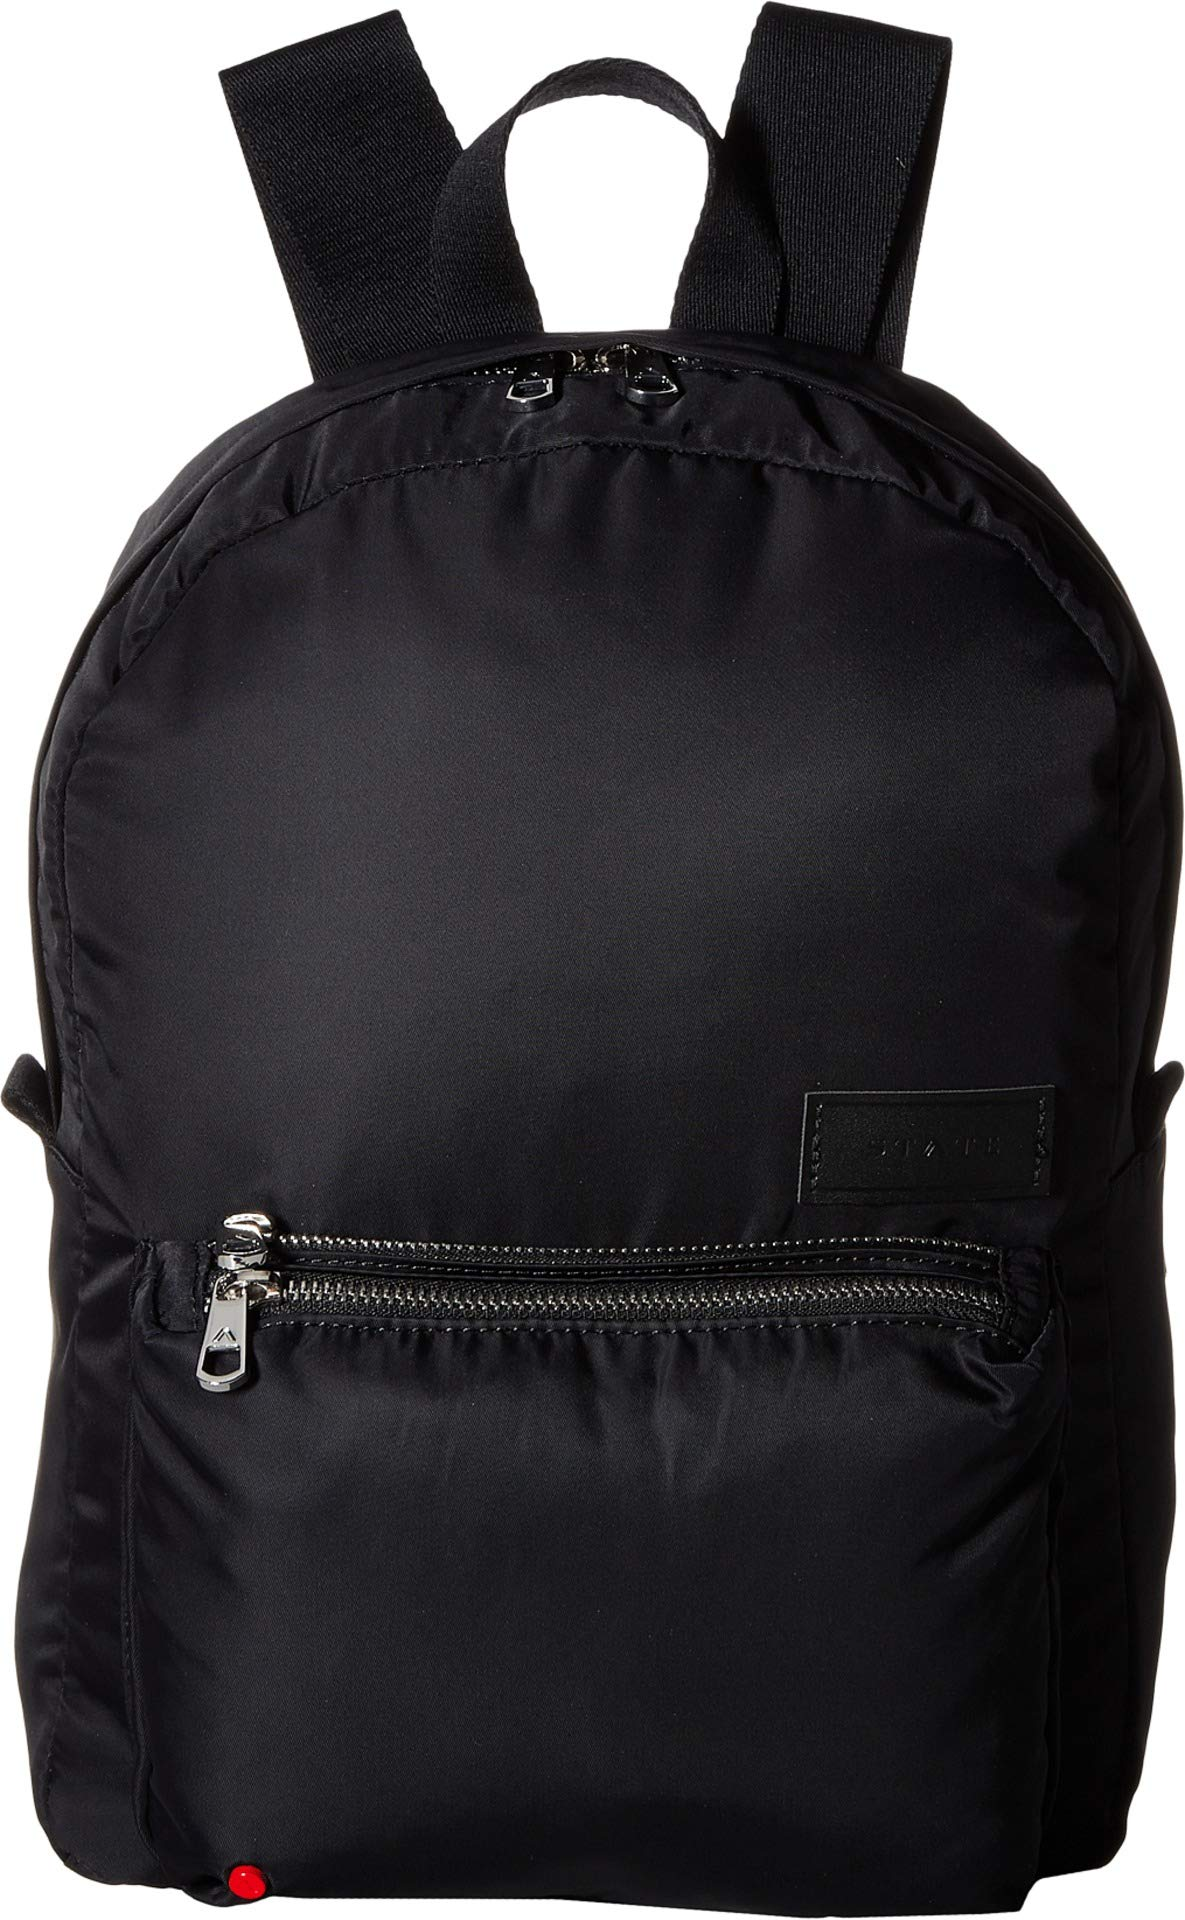 STATE Women's Mini Lorimer Backpack, Black, One Size by STATE Bags